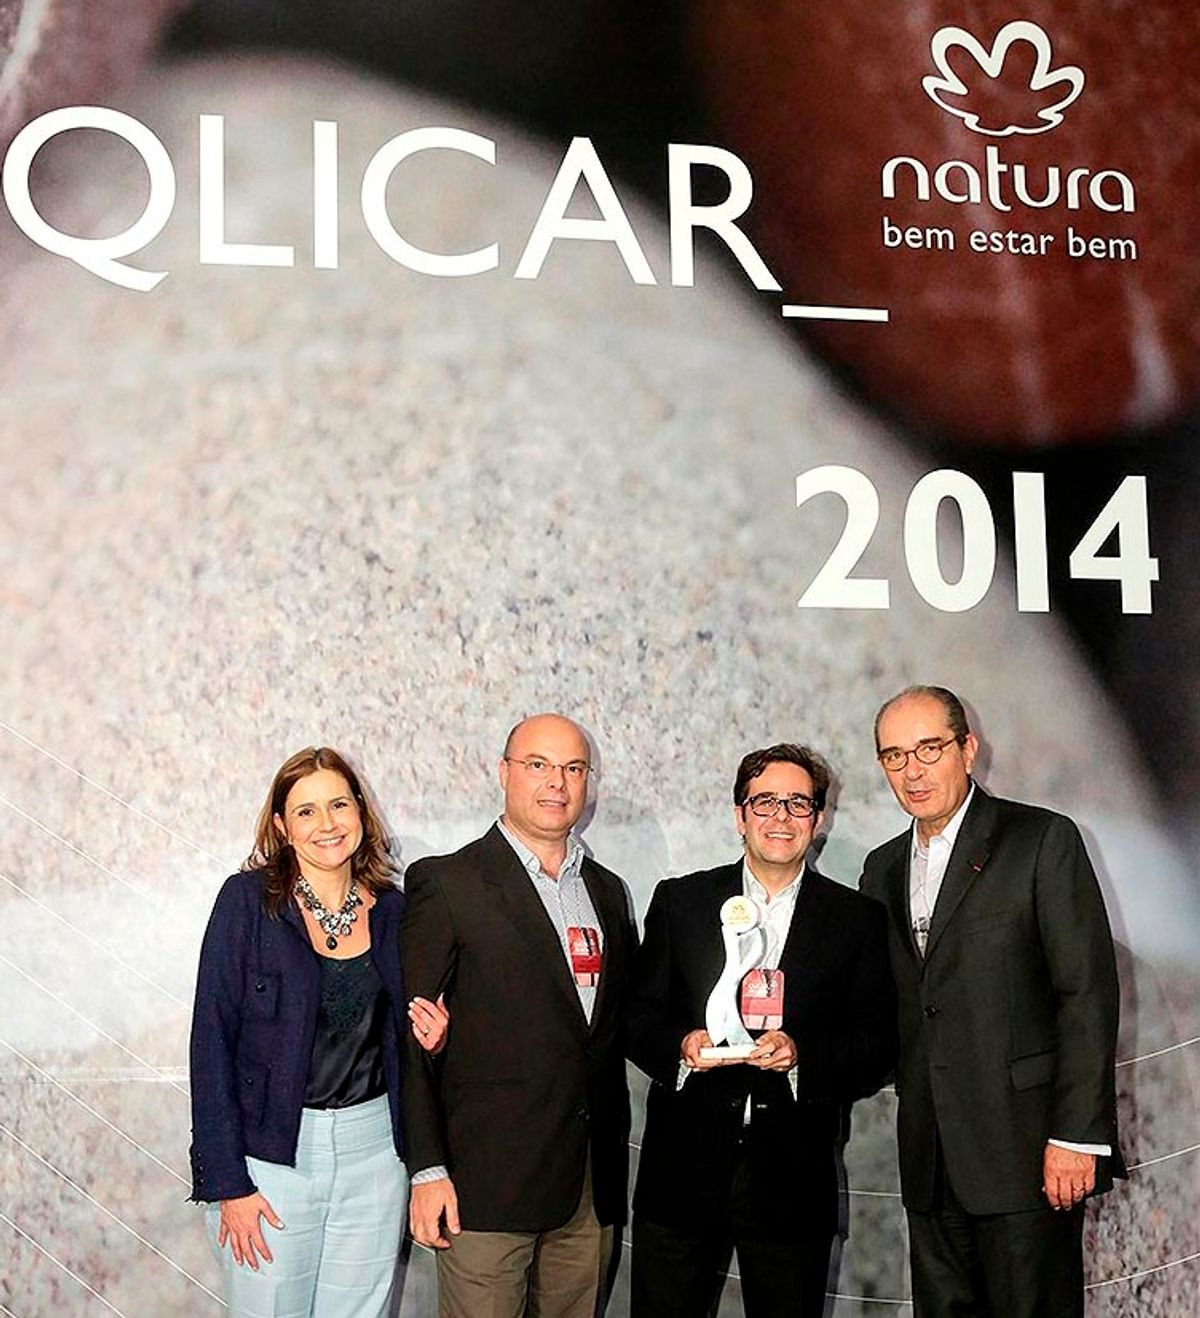 Penske Logistics South America Honored by Beauty Maker Natura